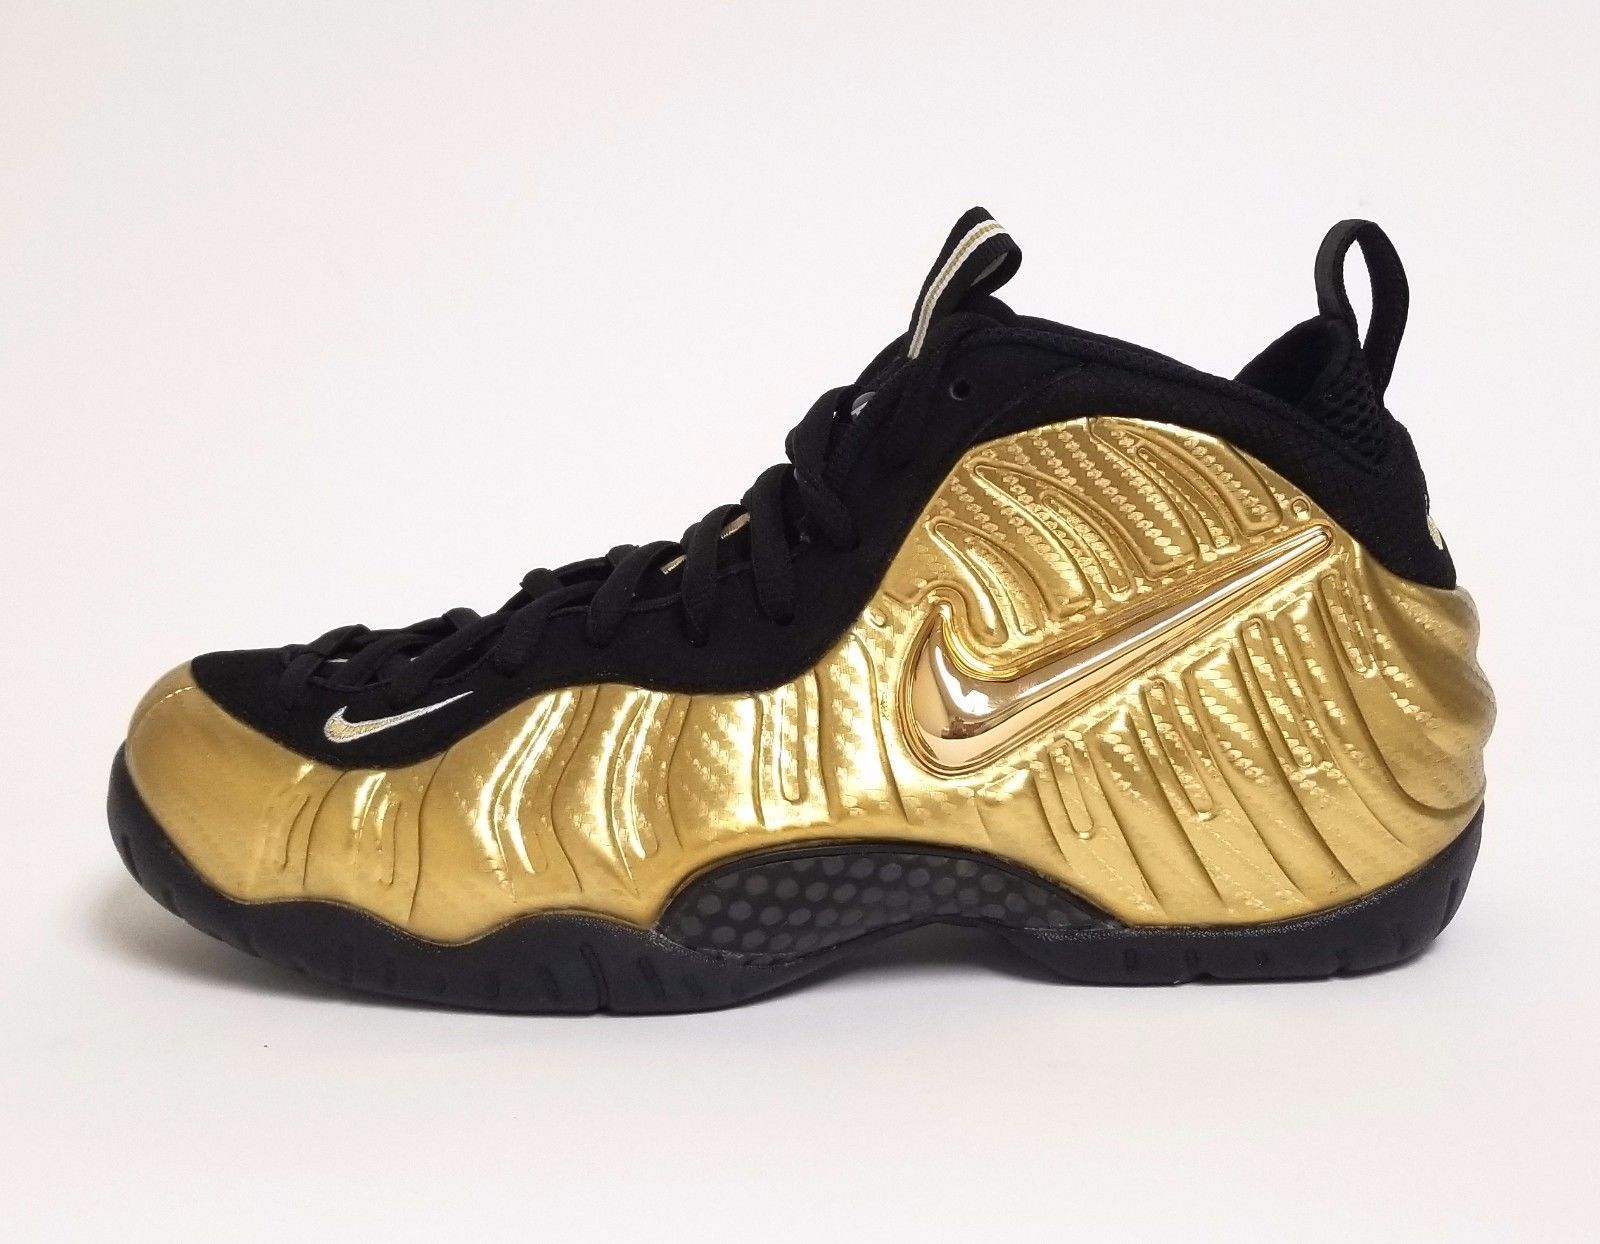 0525d3f0c73 ... shopping nike mens nike air foamposite pro metallic gold black white  624041 701 walmart 9cb9d 4a09a